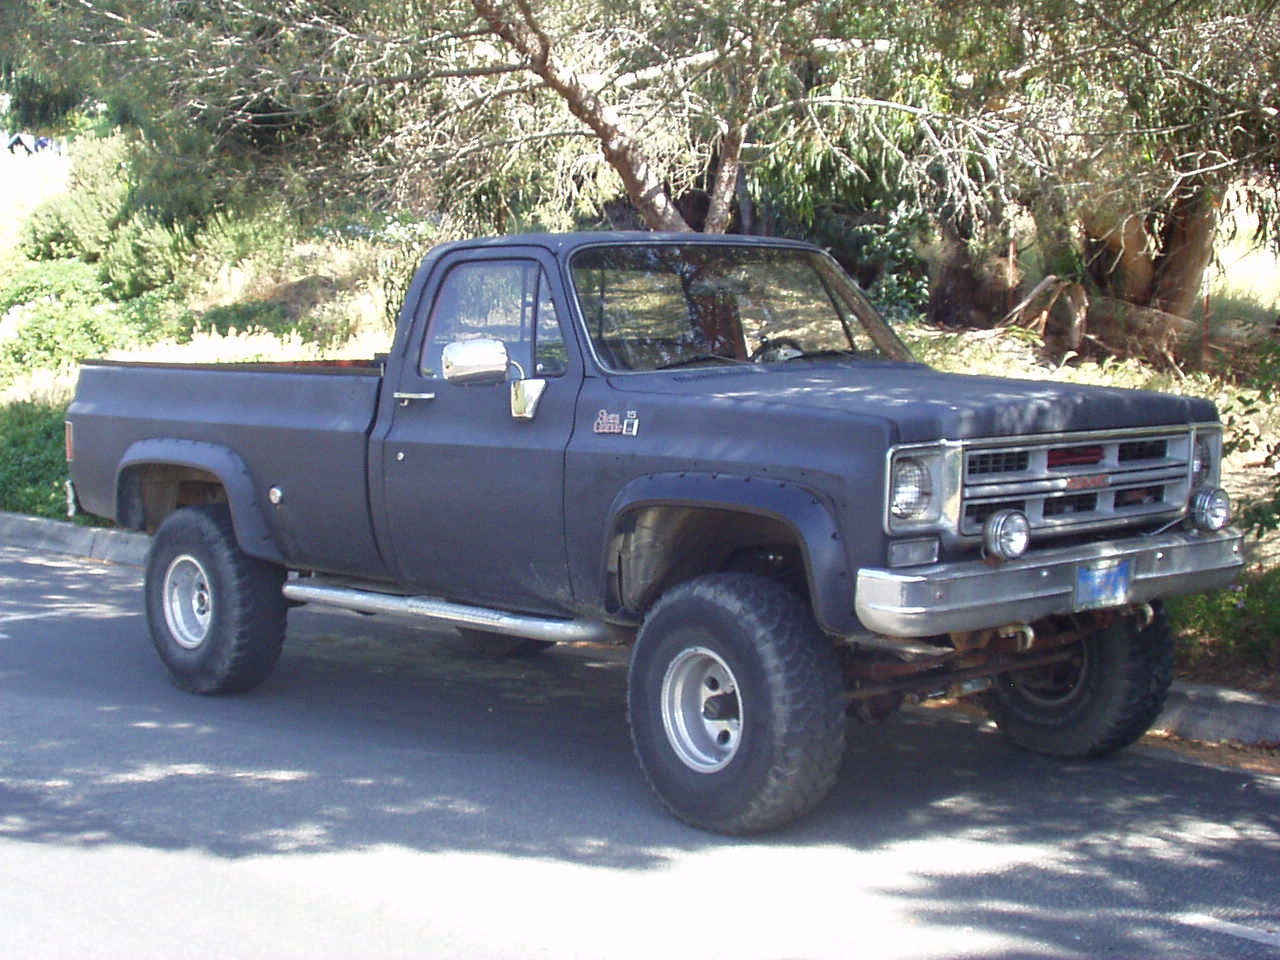 1995 Chevrolet Blazer Pictures C969 pi36082275 as well CBCNE moreover 1978 Gmc Jimmy High Sierra furthermore 1969 1972 Chevy Blazer For Sale additionally 1972 Chevrolet Blazer. on 1972 gmc jimmy 4x4